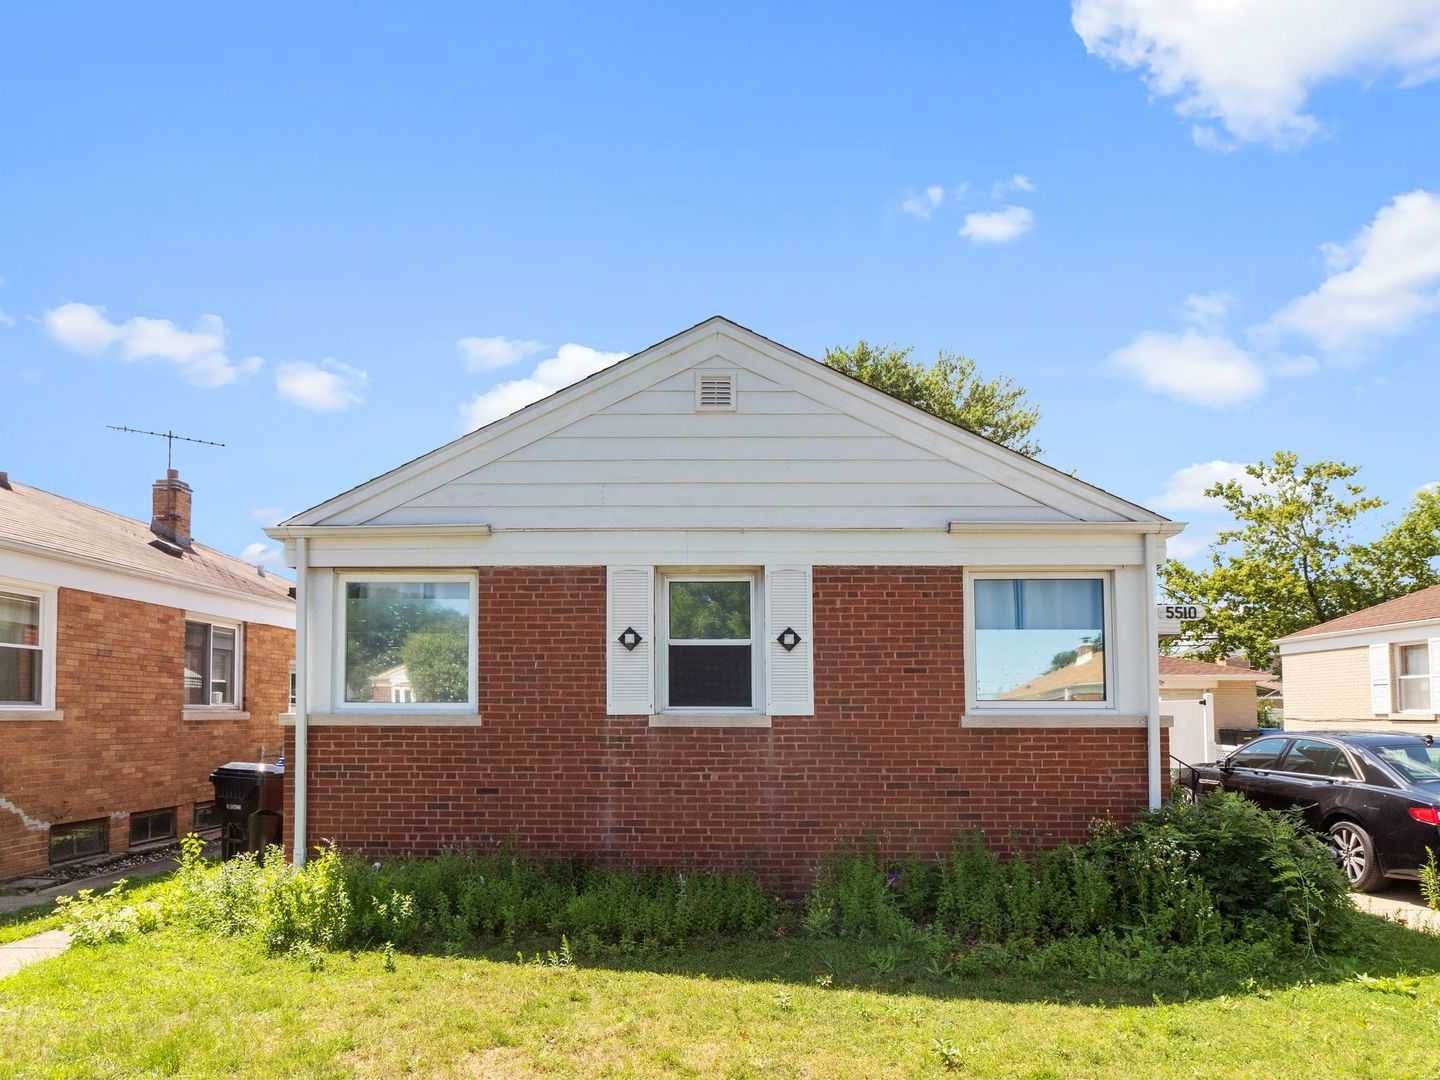 5510 Oketo ,Chicago, Illinois 60656